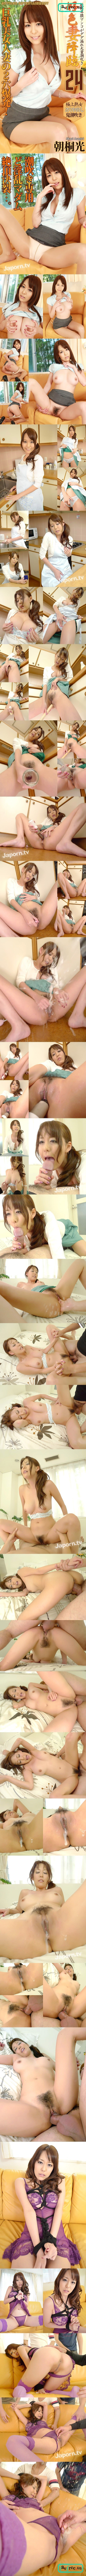 [SKY 216] Dirty Minded Wife Advent Vol.24 : Akari Asagiri 朝桐光 好色妻降臨 SKY Obsence Wife Advent Dirty Minded Wife Advent Akari Asagiri